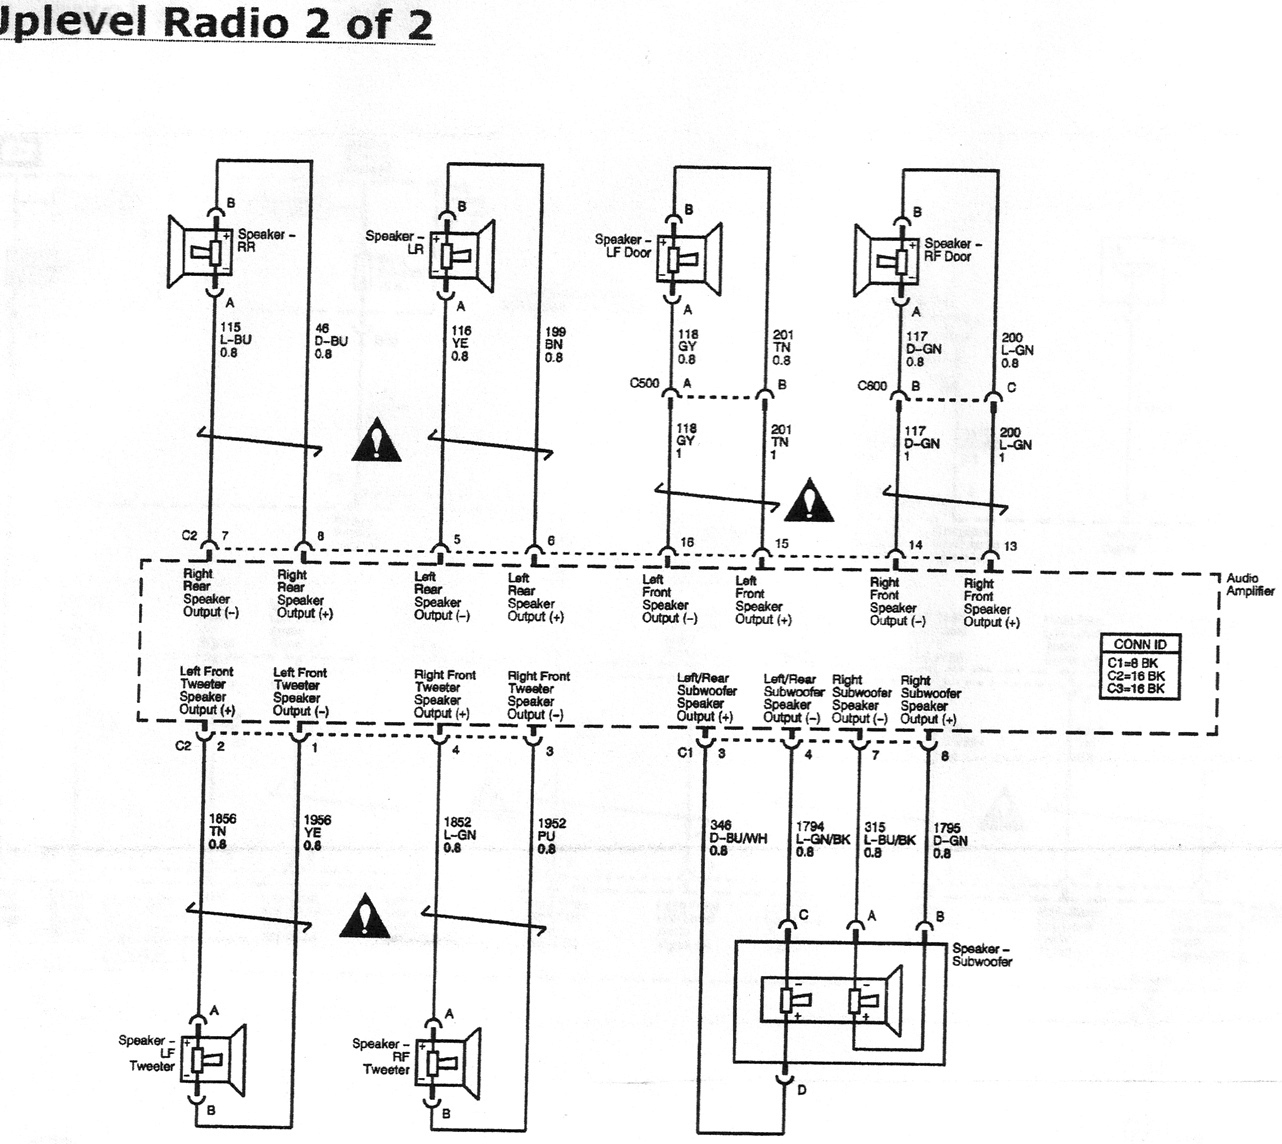 29802 monsoon amp speaker replacement monsoon_wiring_diagram_page_2 monsoon amp and speaker replacement saturn sky forums saturn firebird monsoon wiring diagram at alyssarenee.co